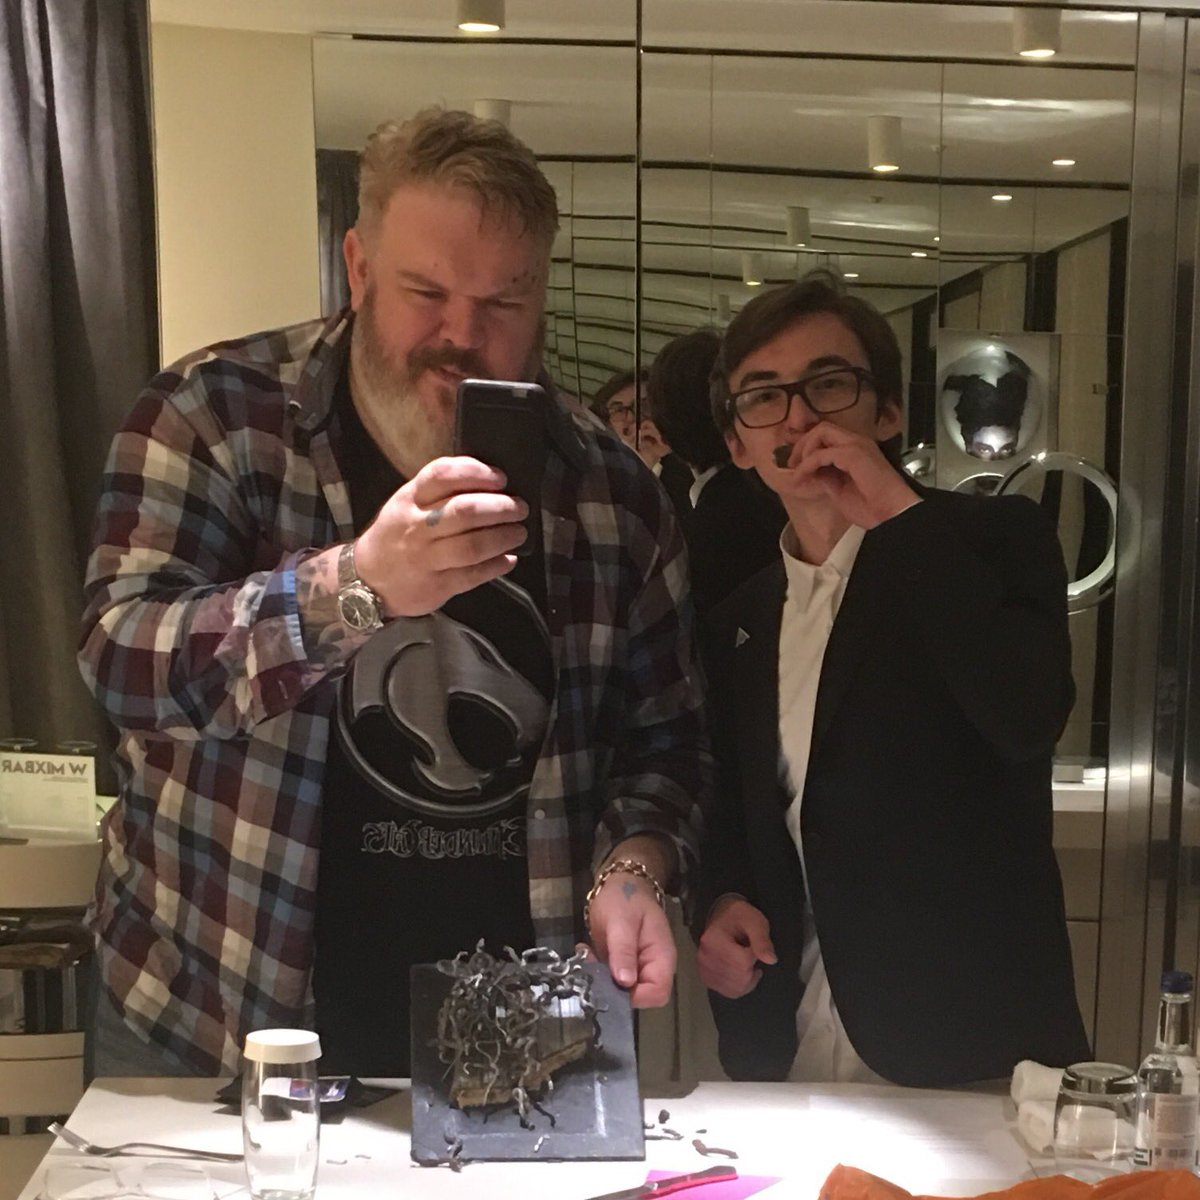 Even after all he's done to poor hodor. I'm still sharing my cake with @Isaac_H_Wright  #love  #gameofthrones https://t.co/xJXHu7RVGj